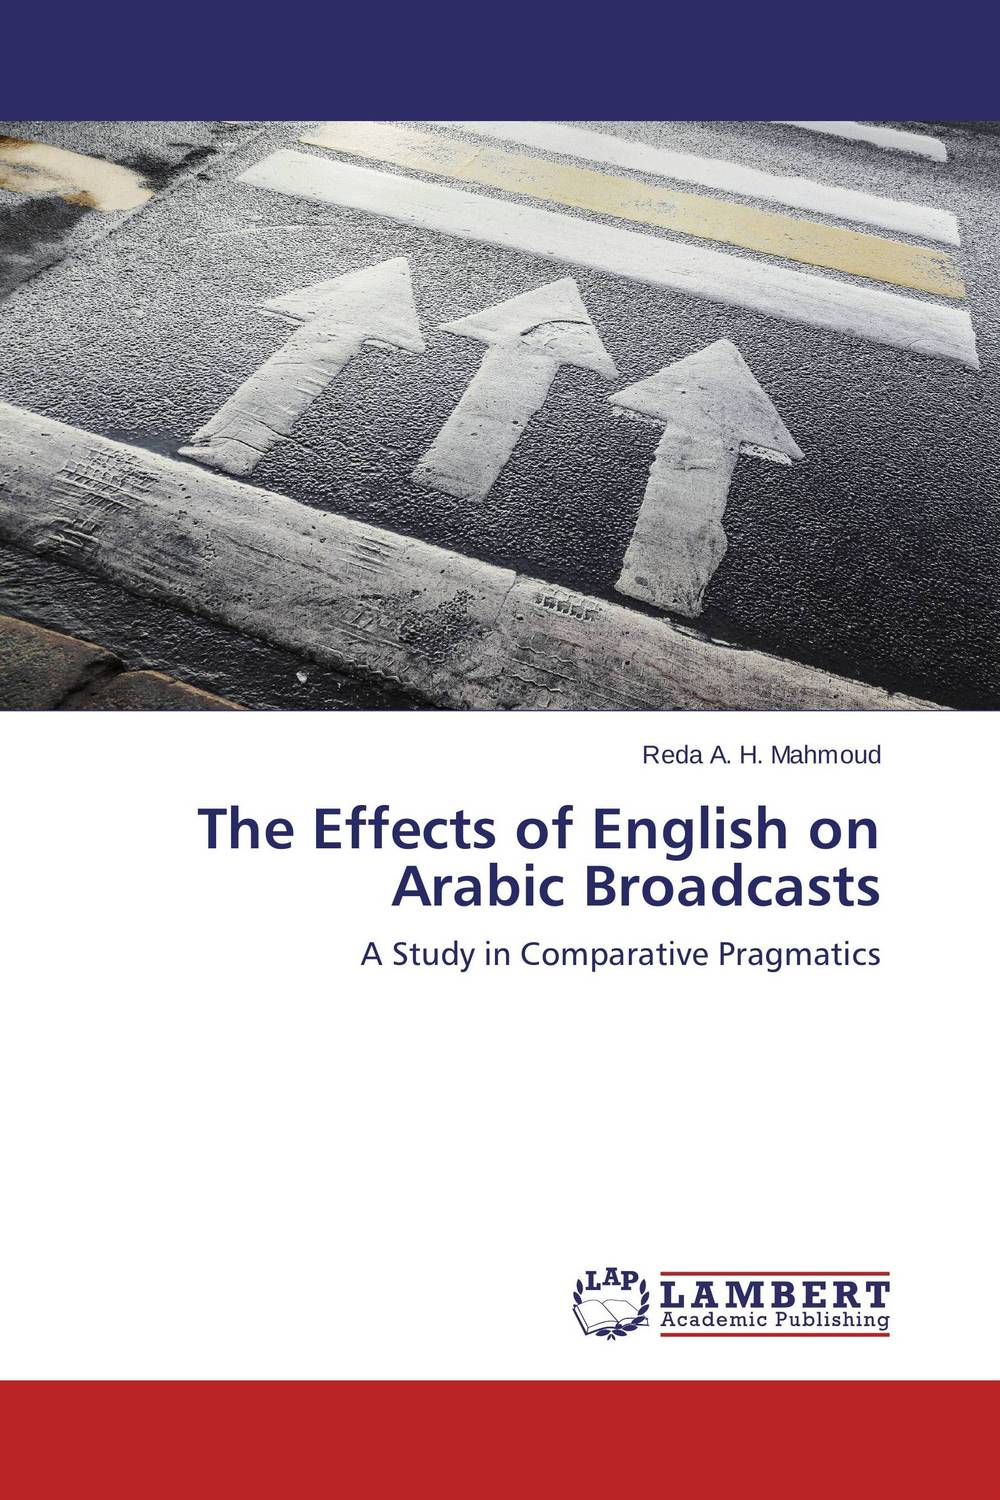 The Effects of English on Arabic Broadcasts